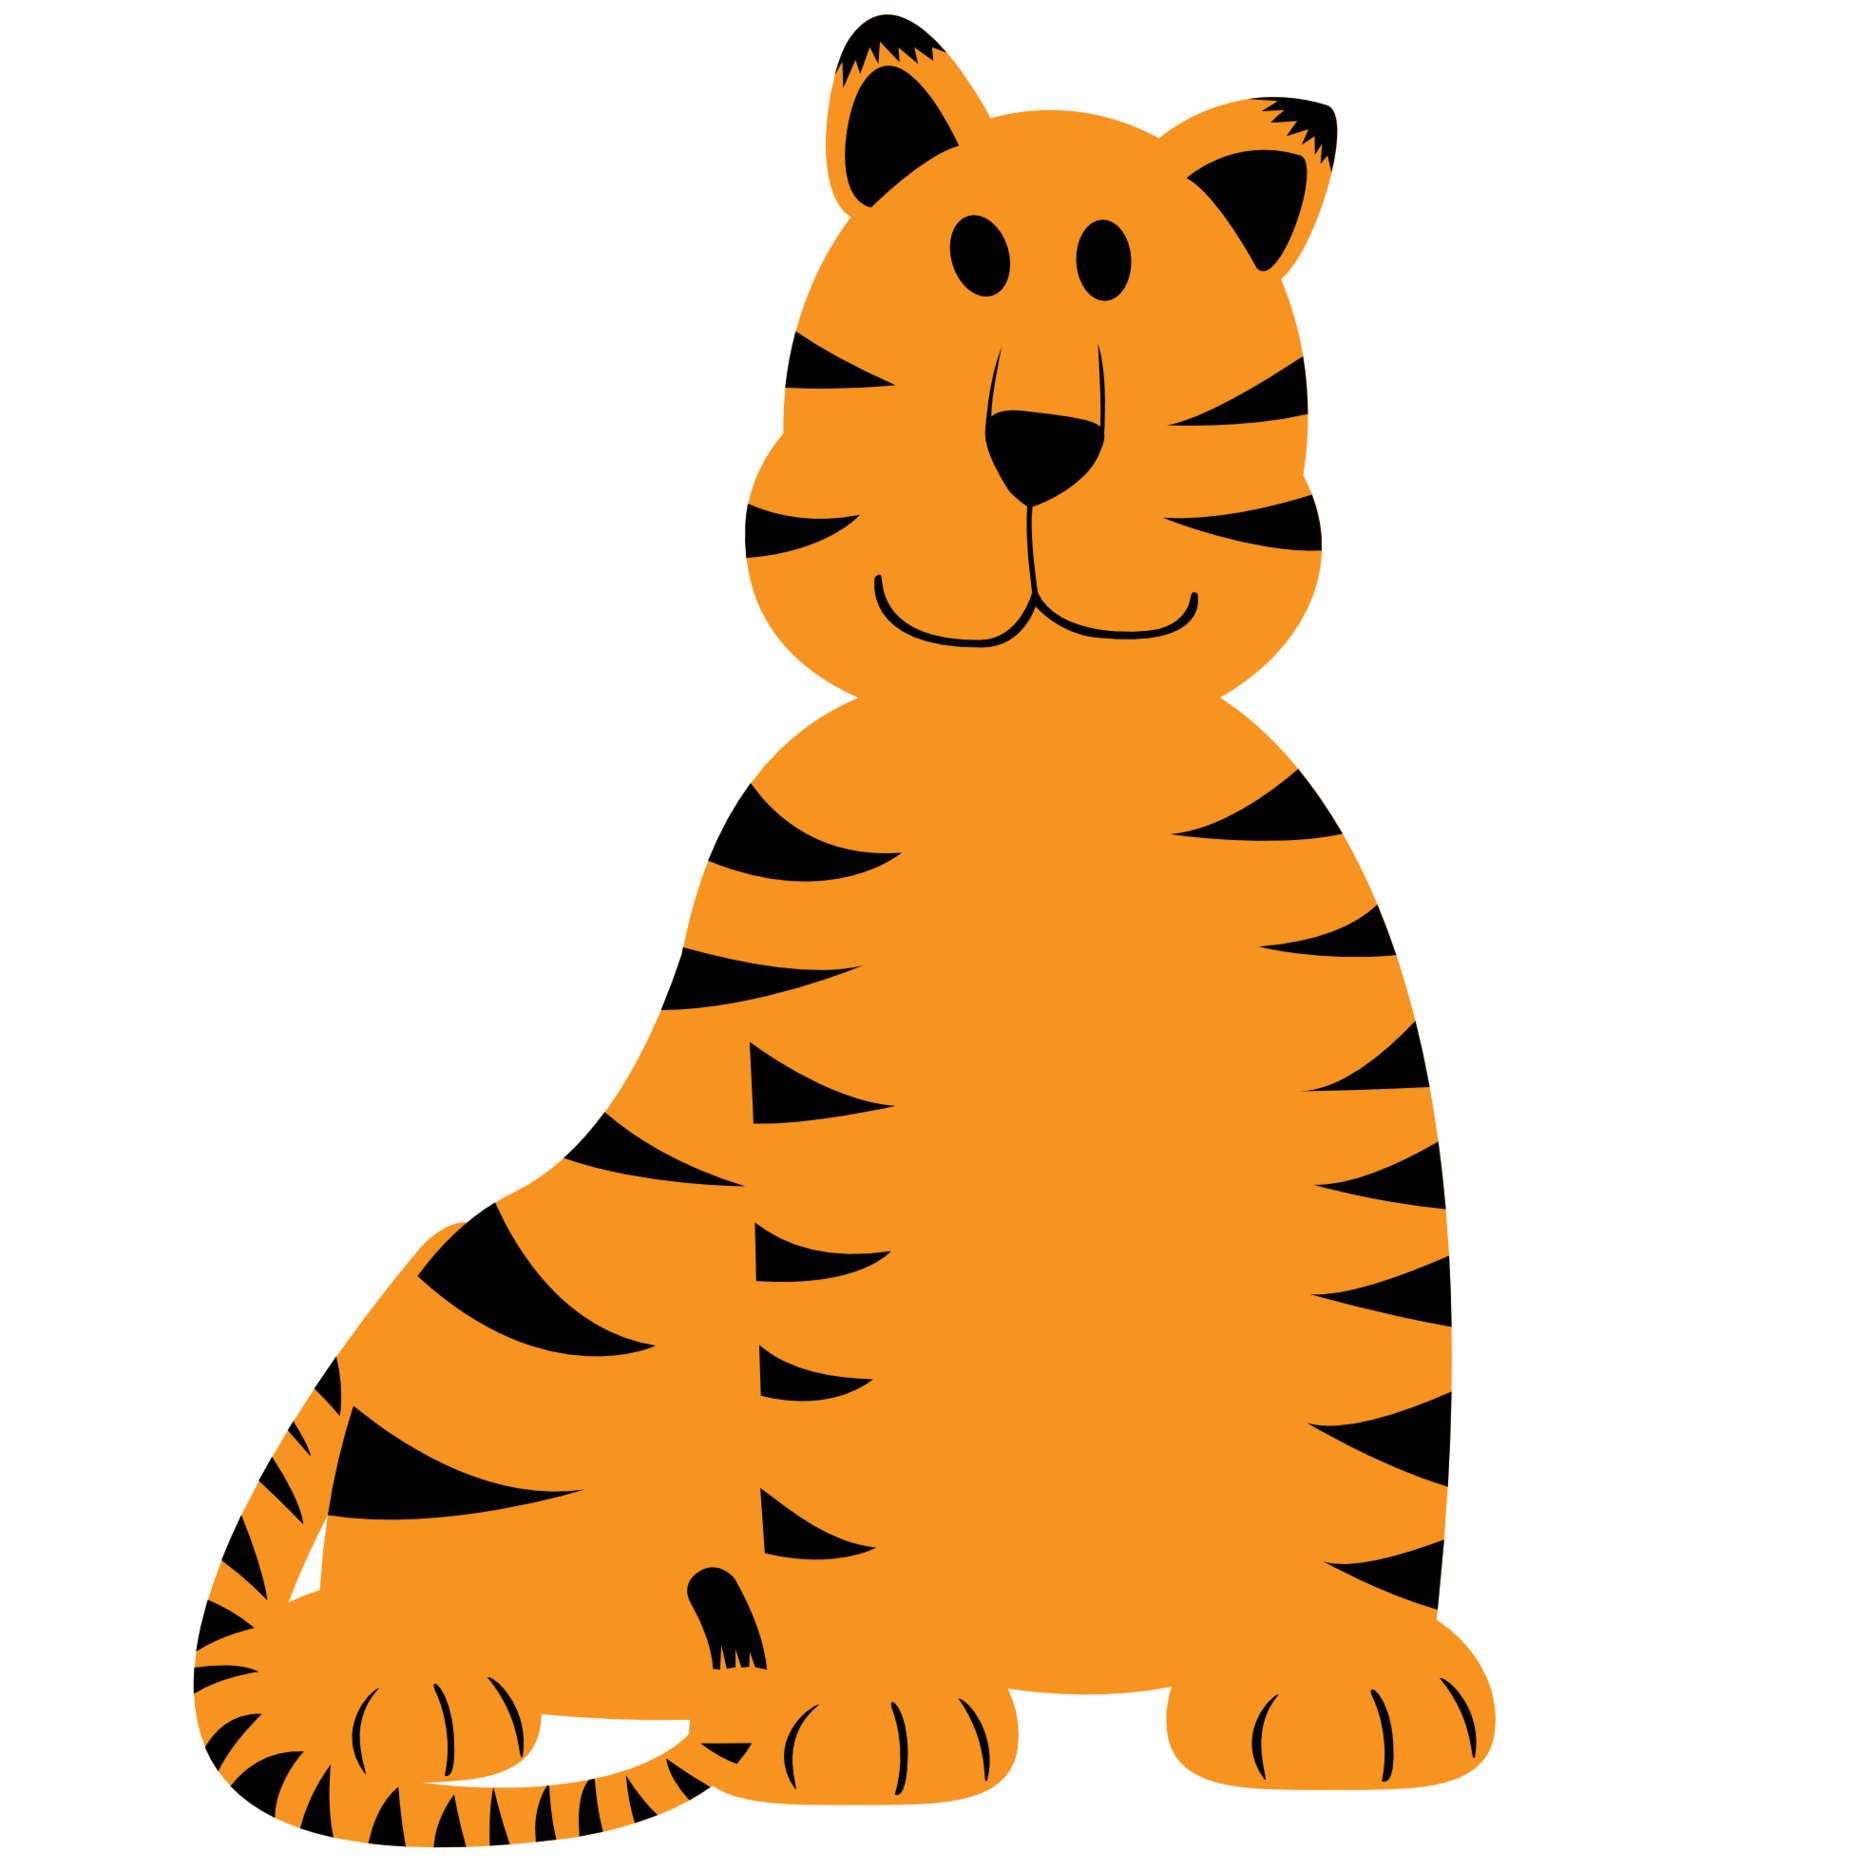 Tiiger clipart funny #11